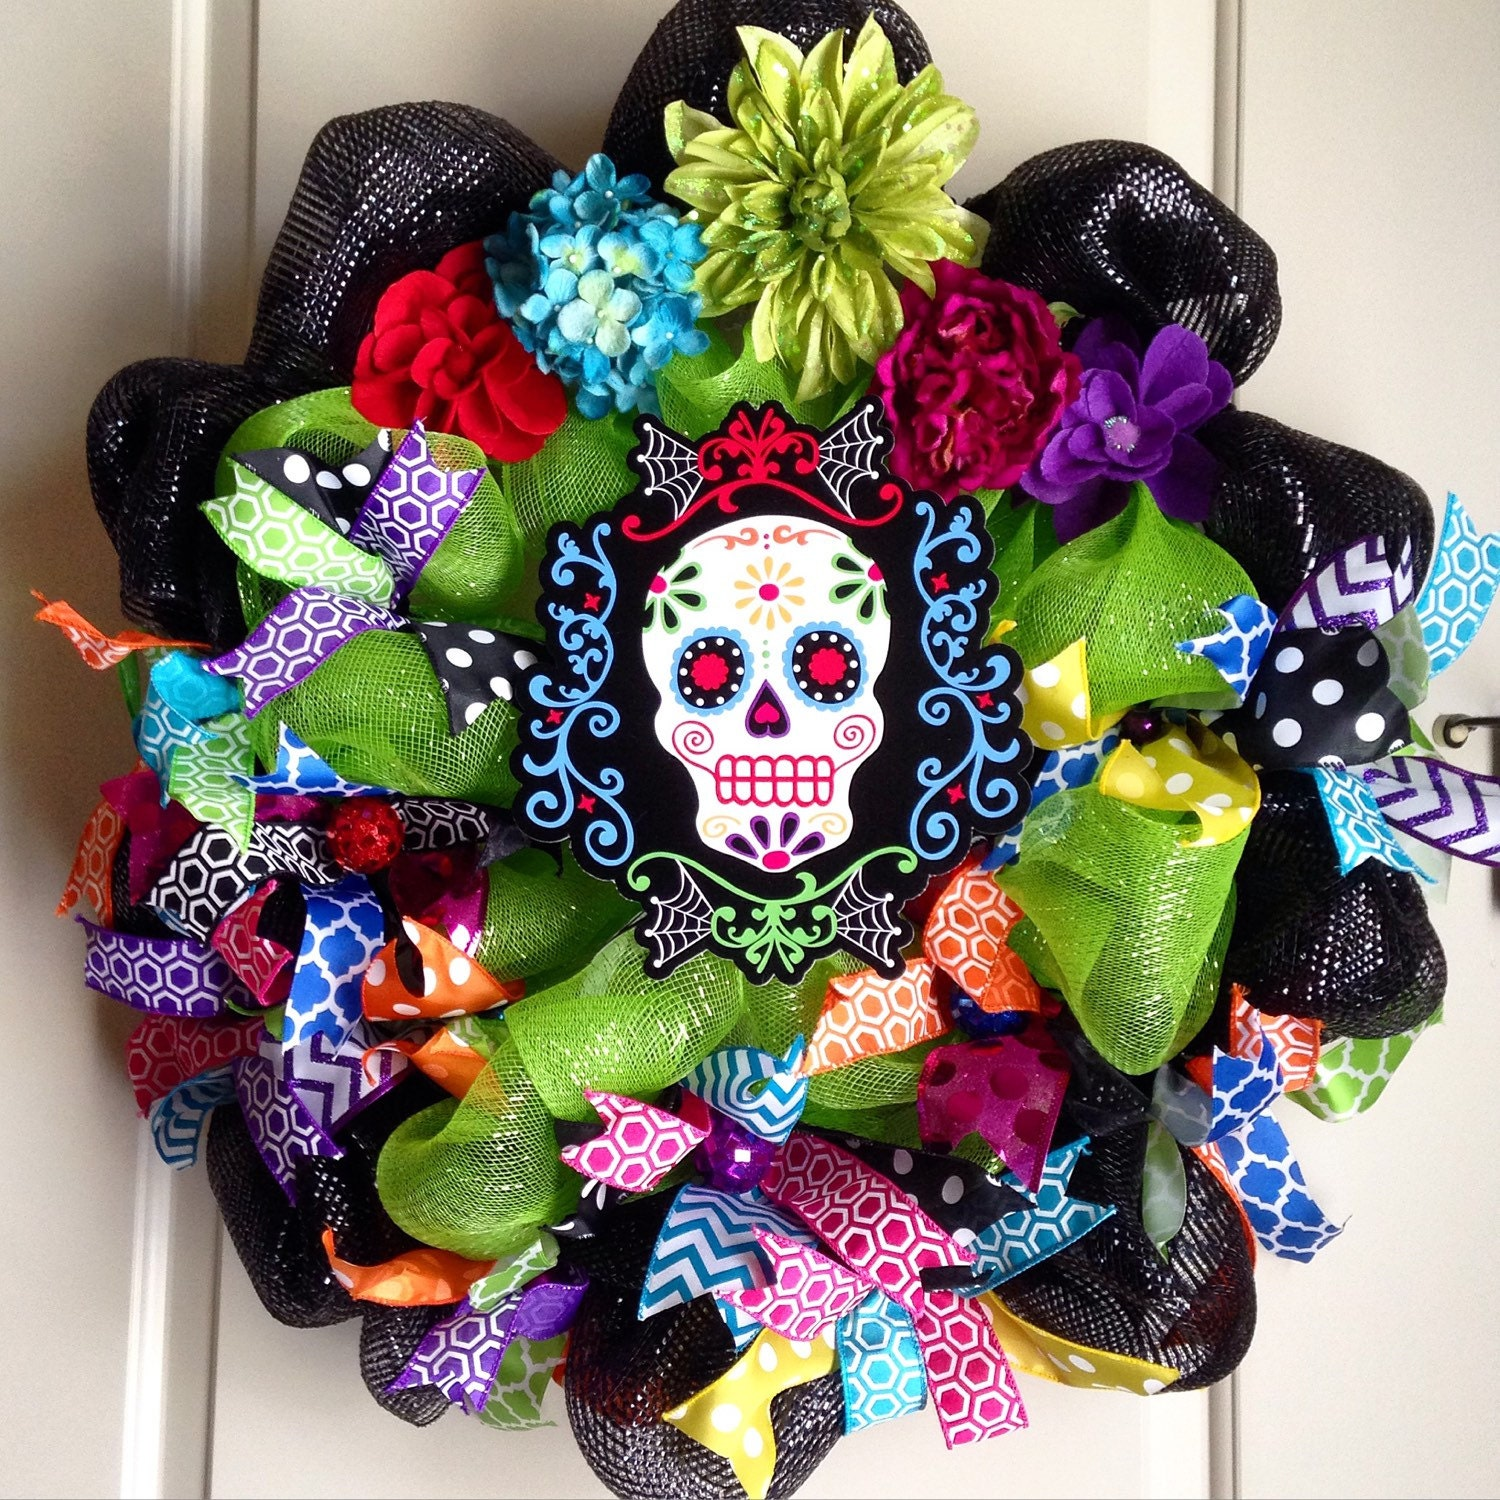 Day of the Dead Sugar Skull Wreath by LuciaMorris on Etsy